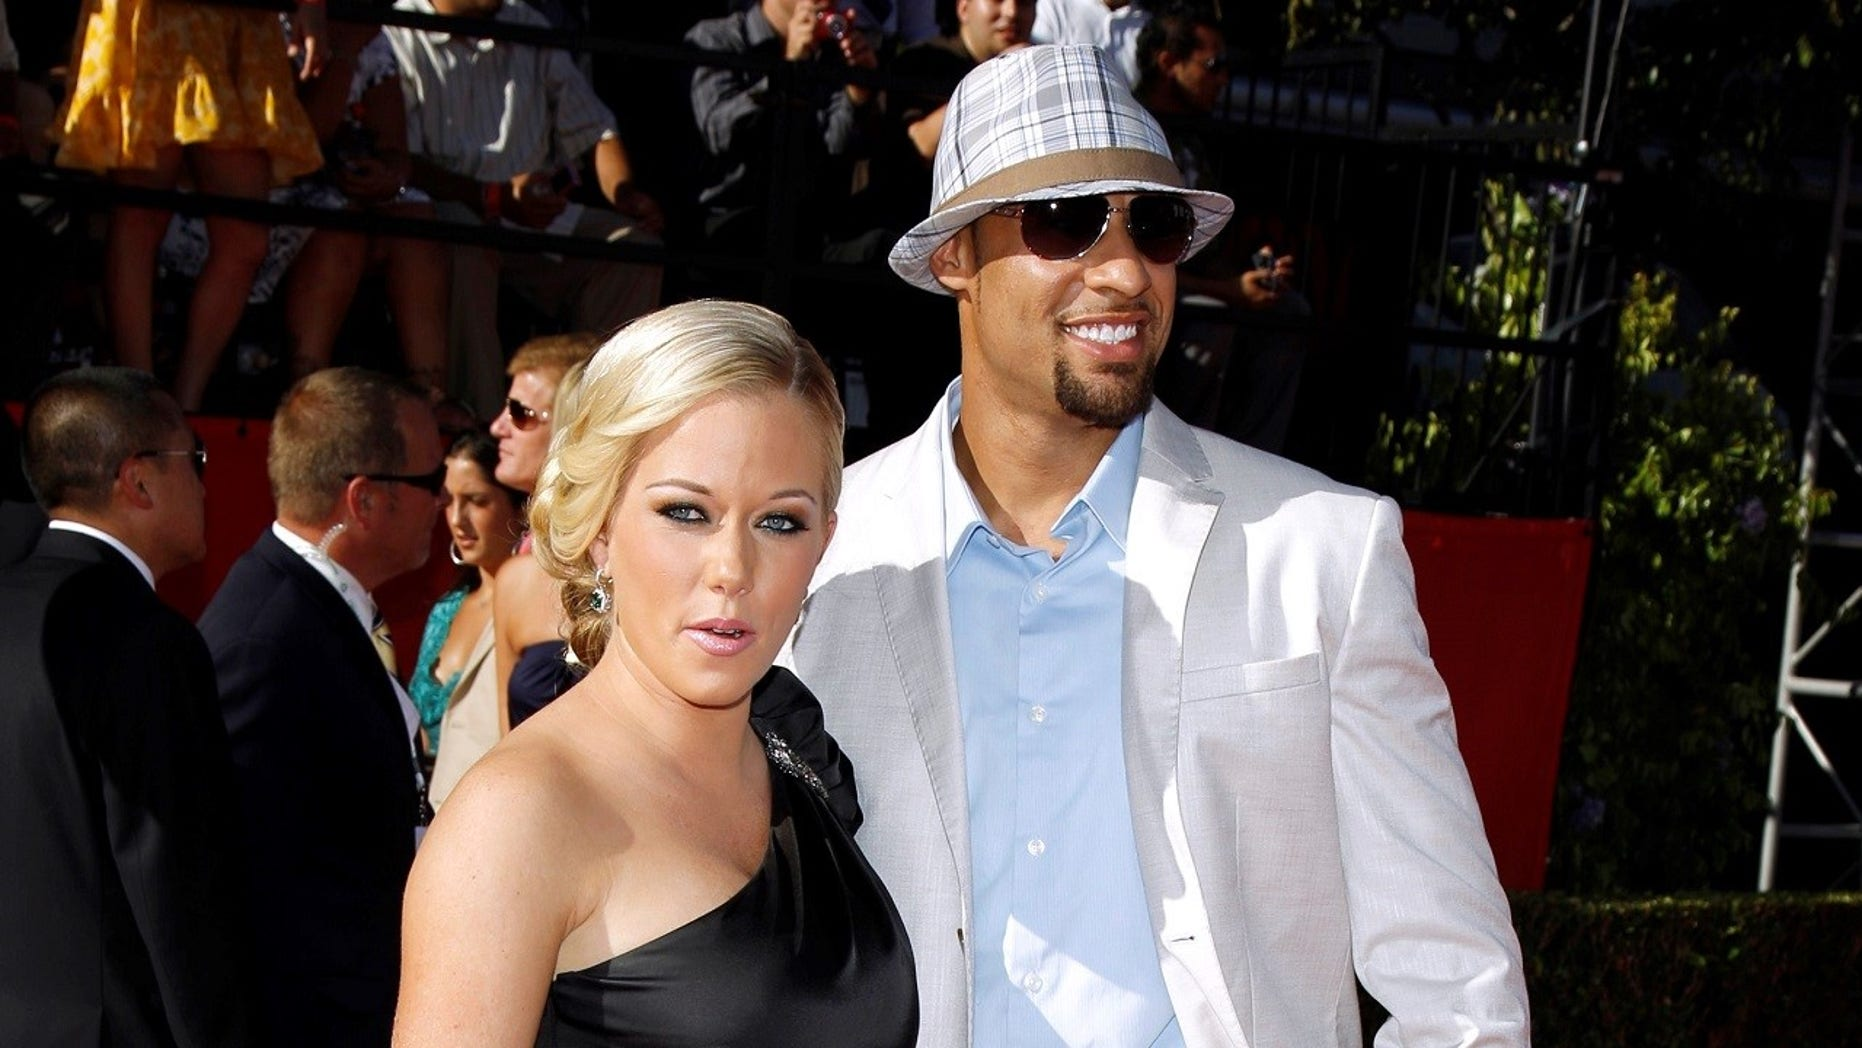 Kendra Wilkinson and Hank Baskett pose together in a 2009 photo. Wilkinson hinted she and Baskett are divorcing.